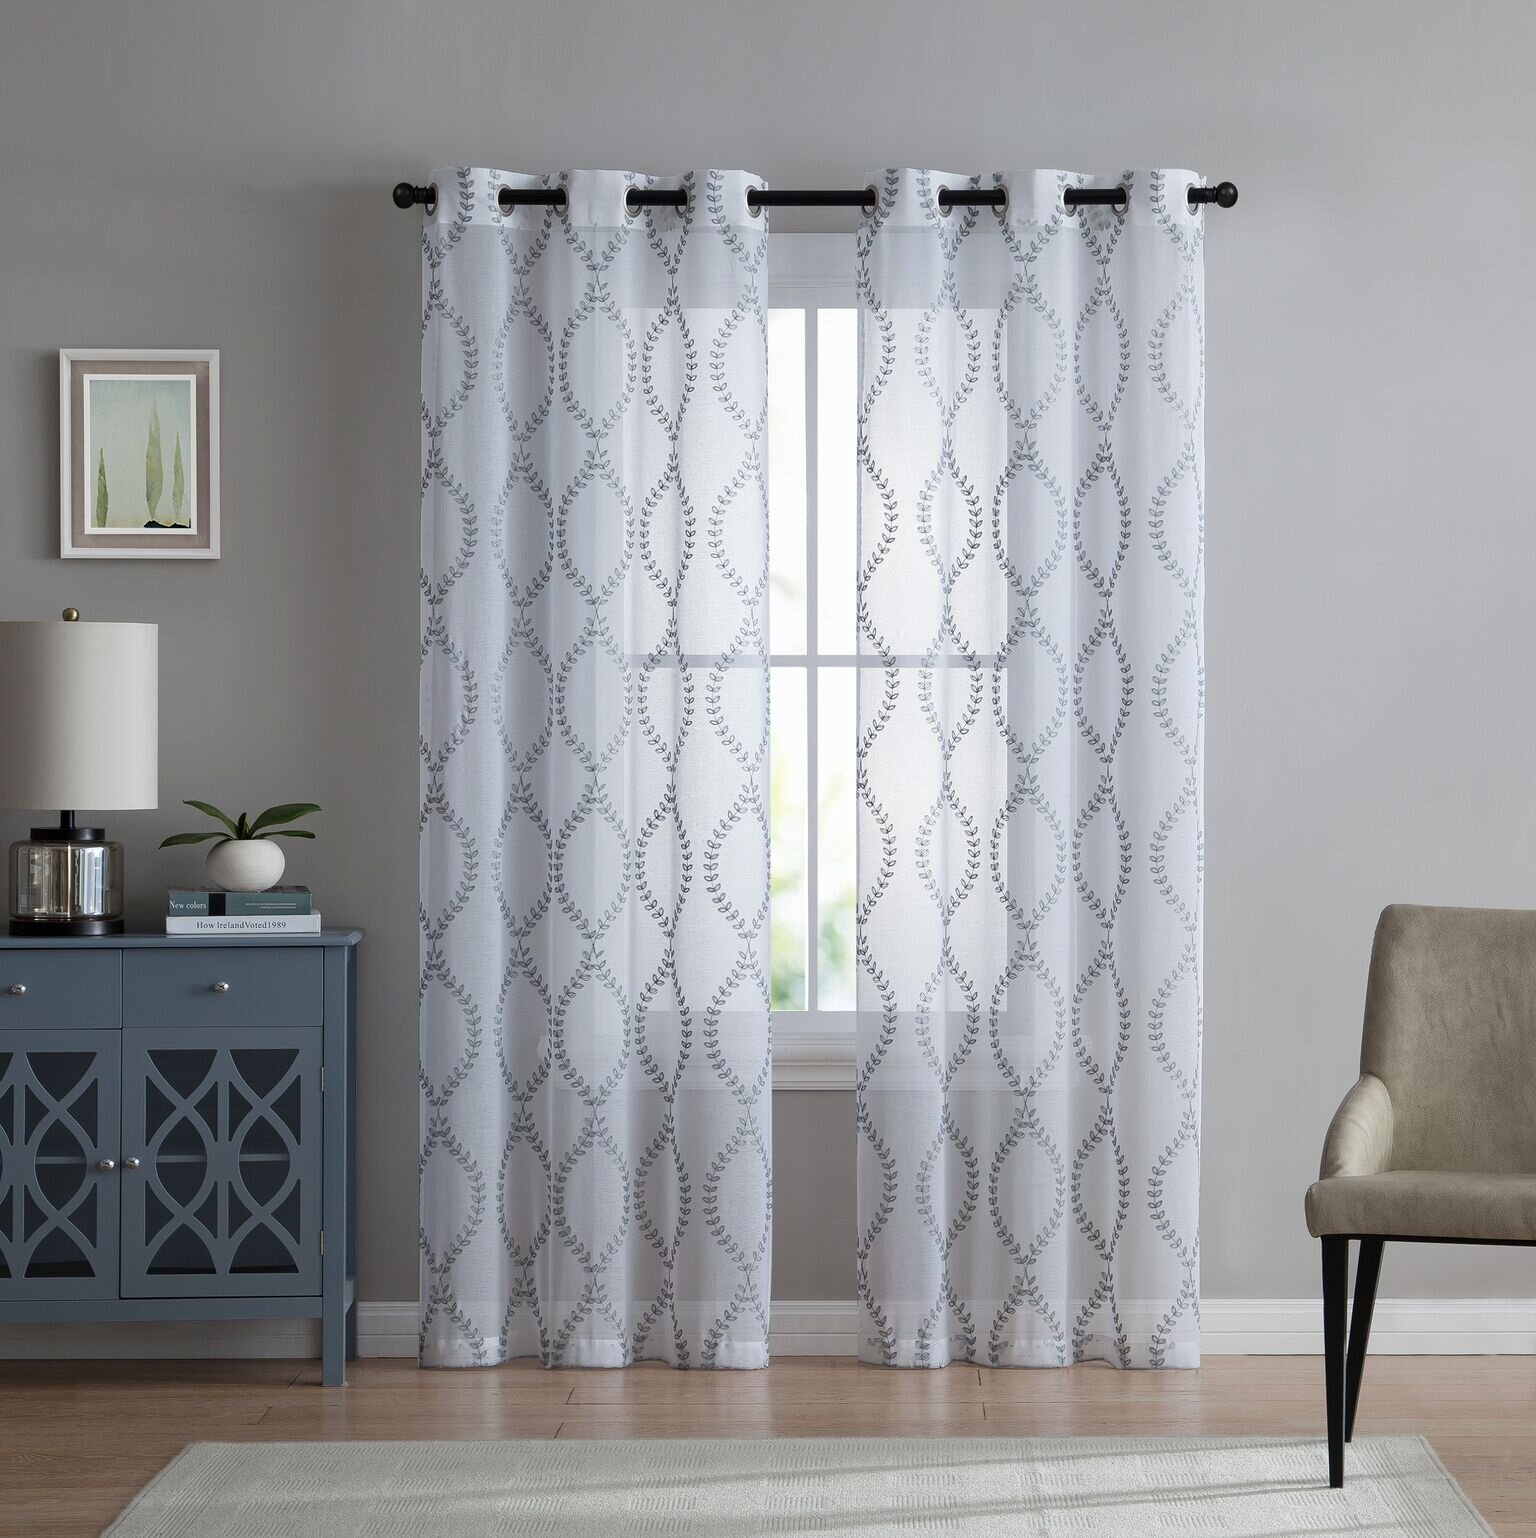 Synthetic Winston Porter Curtains Drapes You Ll Love In 2021 Wayfair